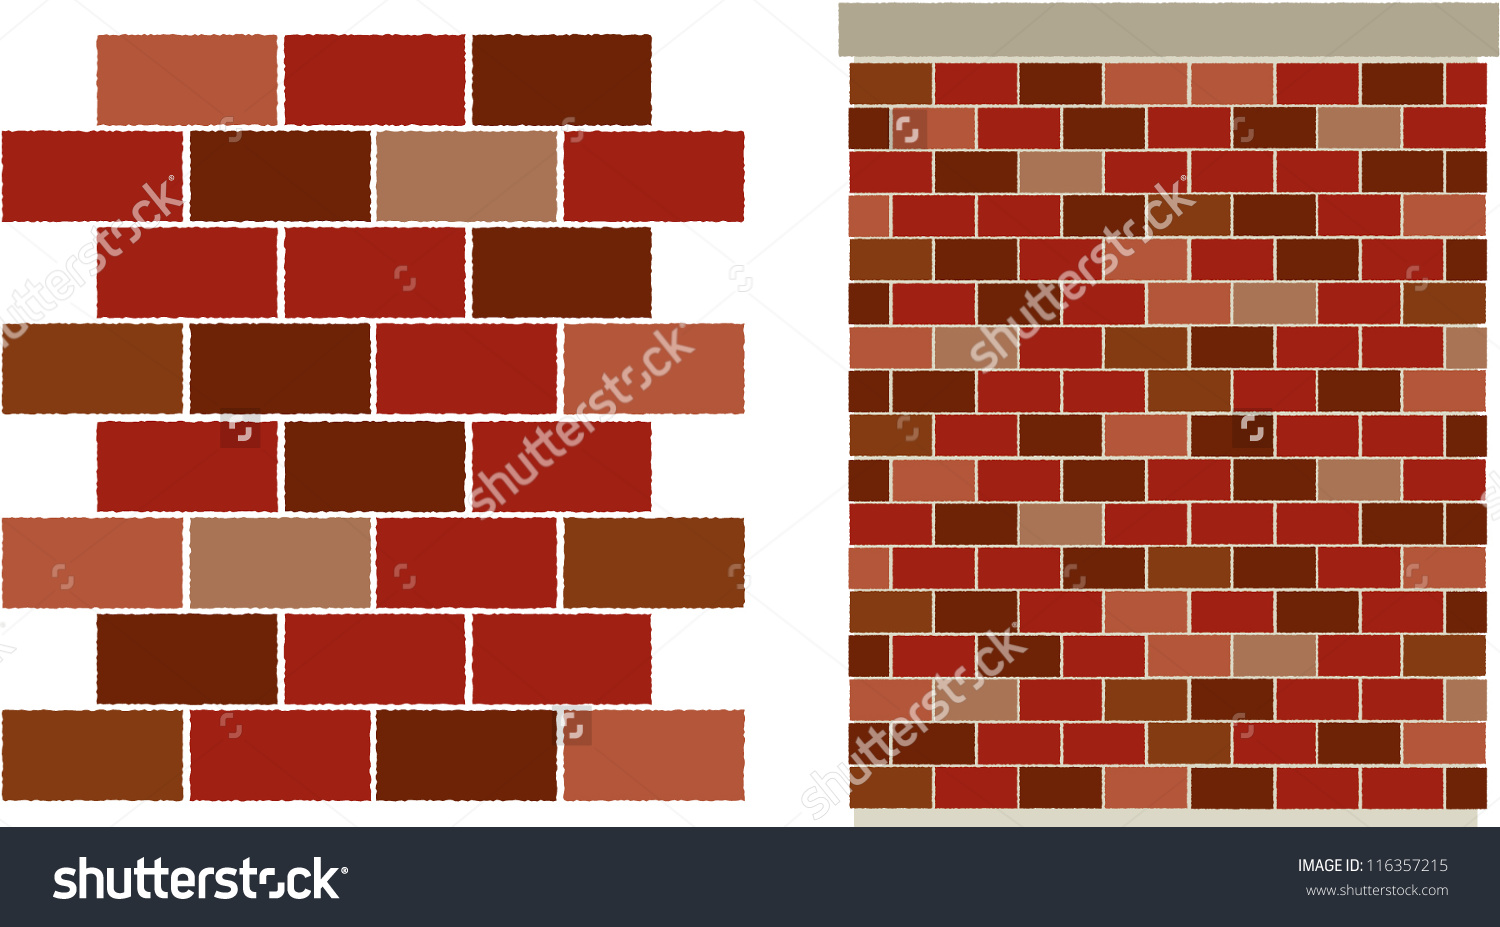 Brick clipart brick chimney.  collection of high